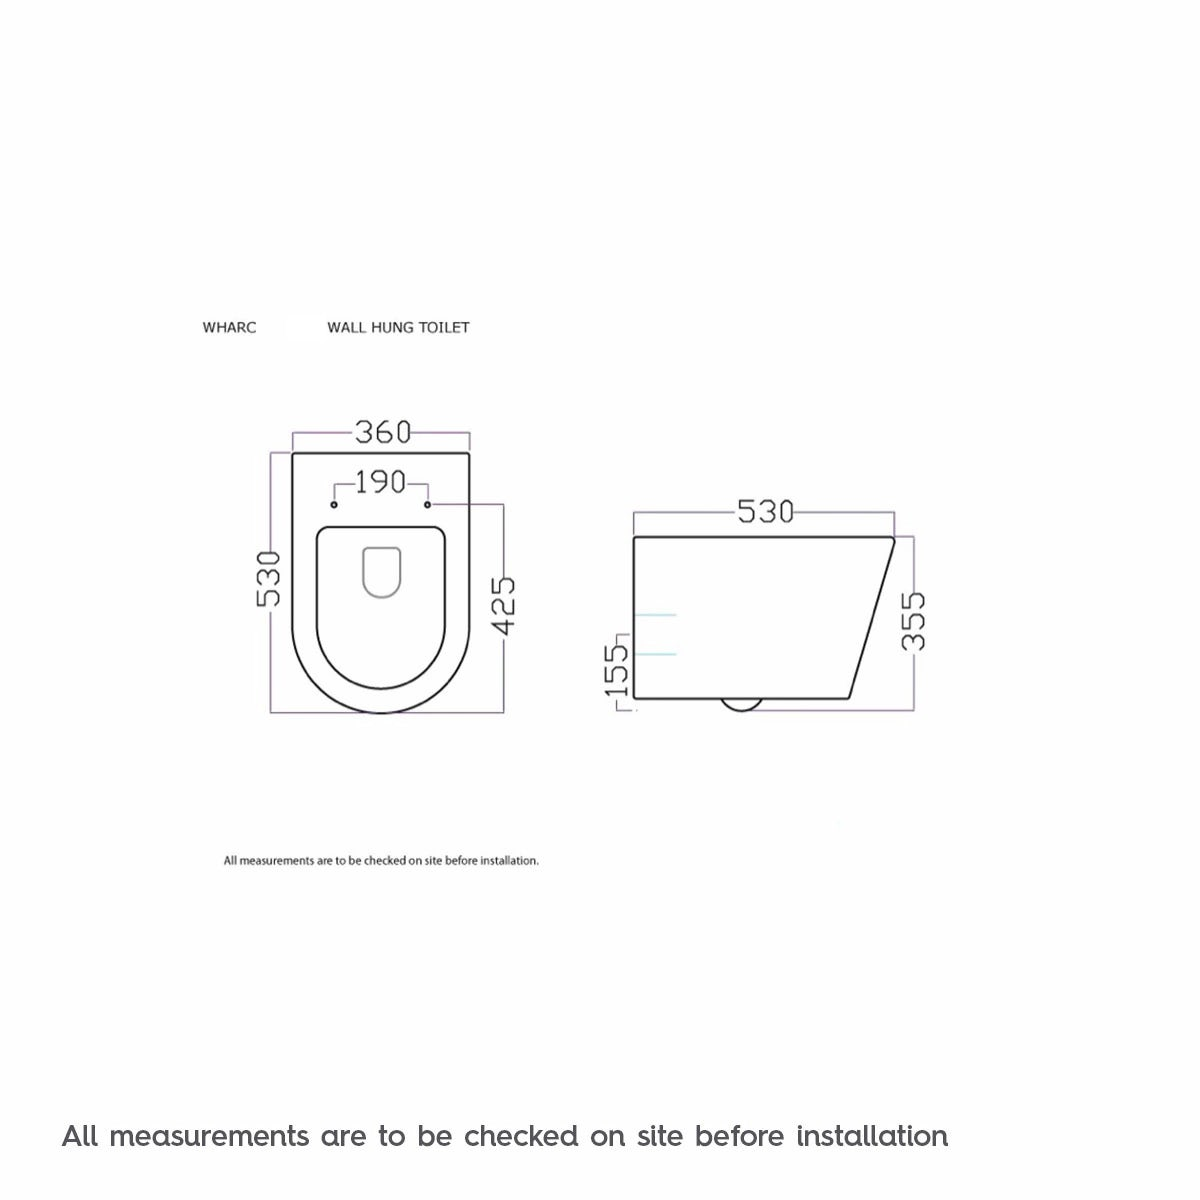 Dimensions for Mode Arte wall hung toilet inc slimline soft close toilet seat